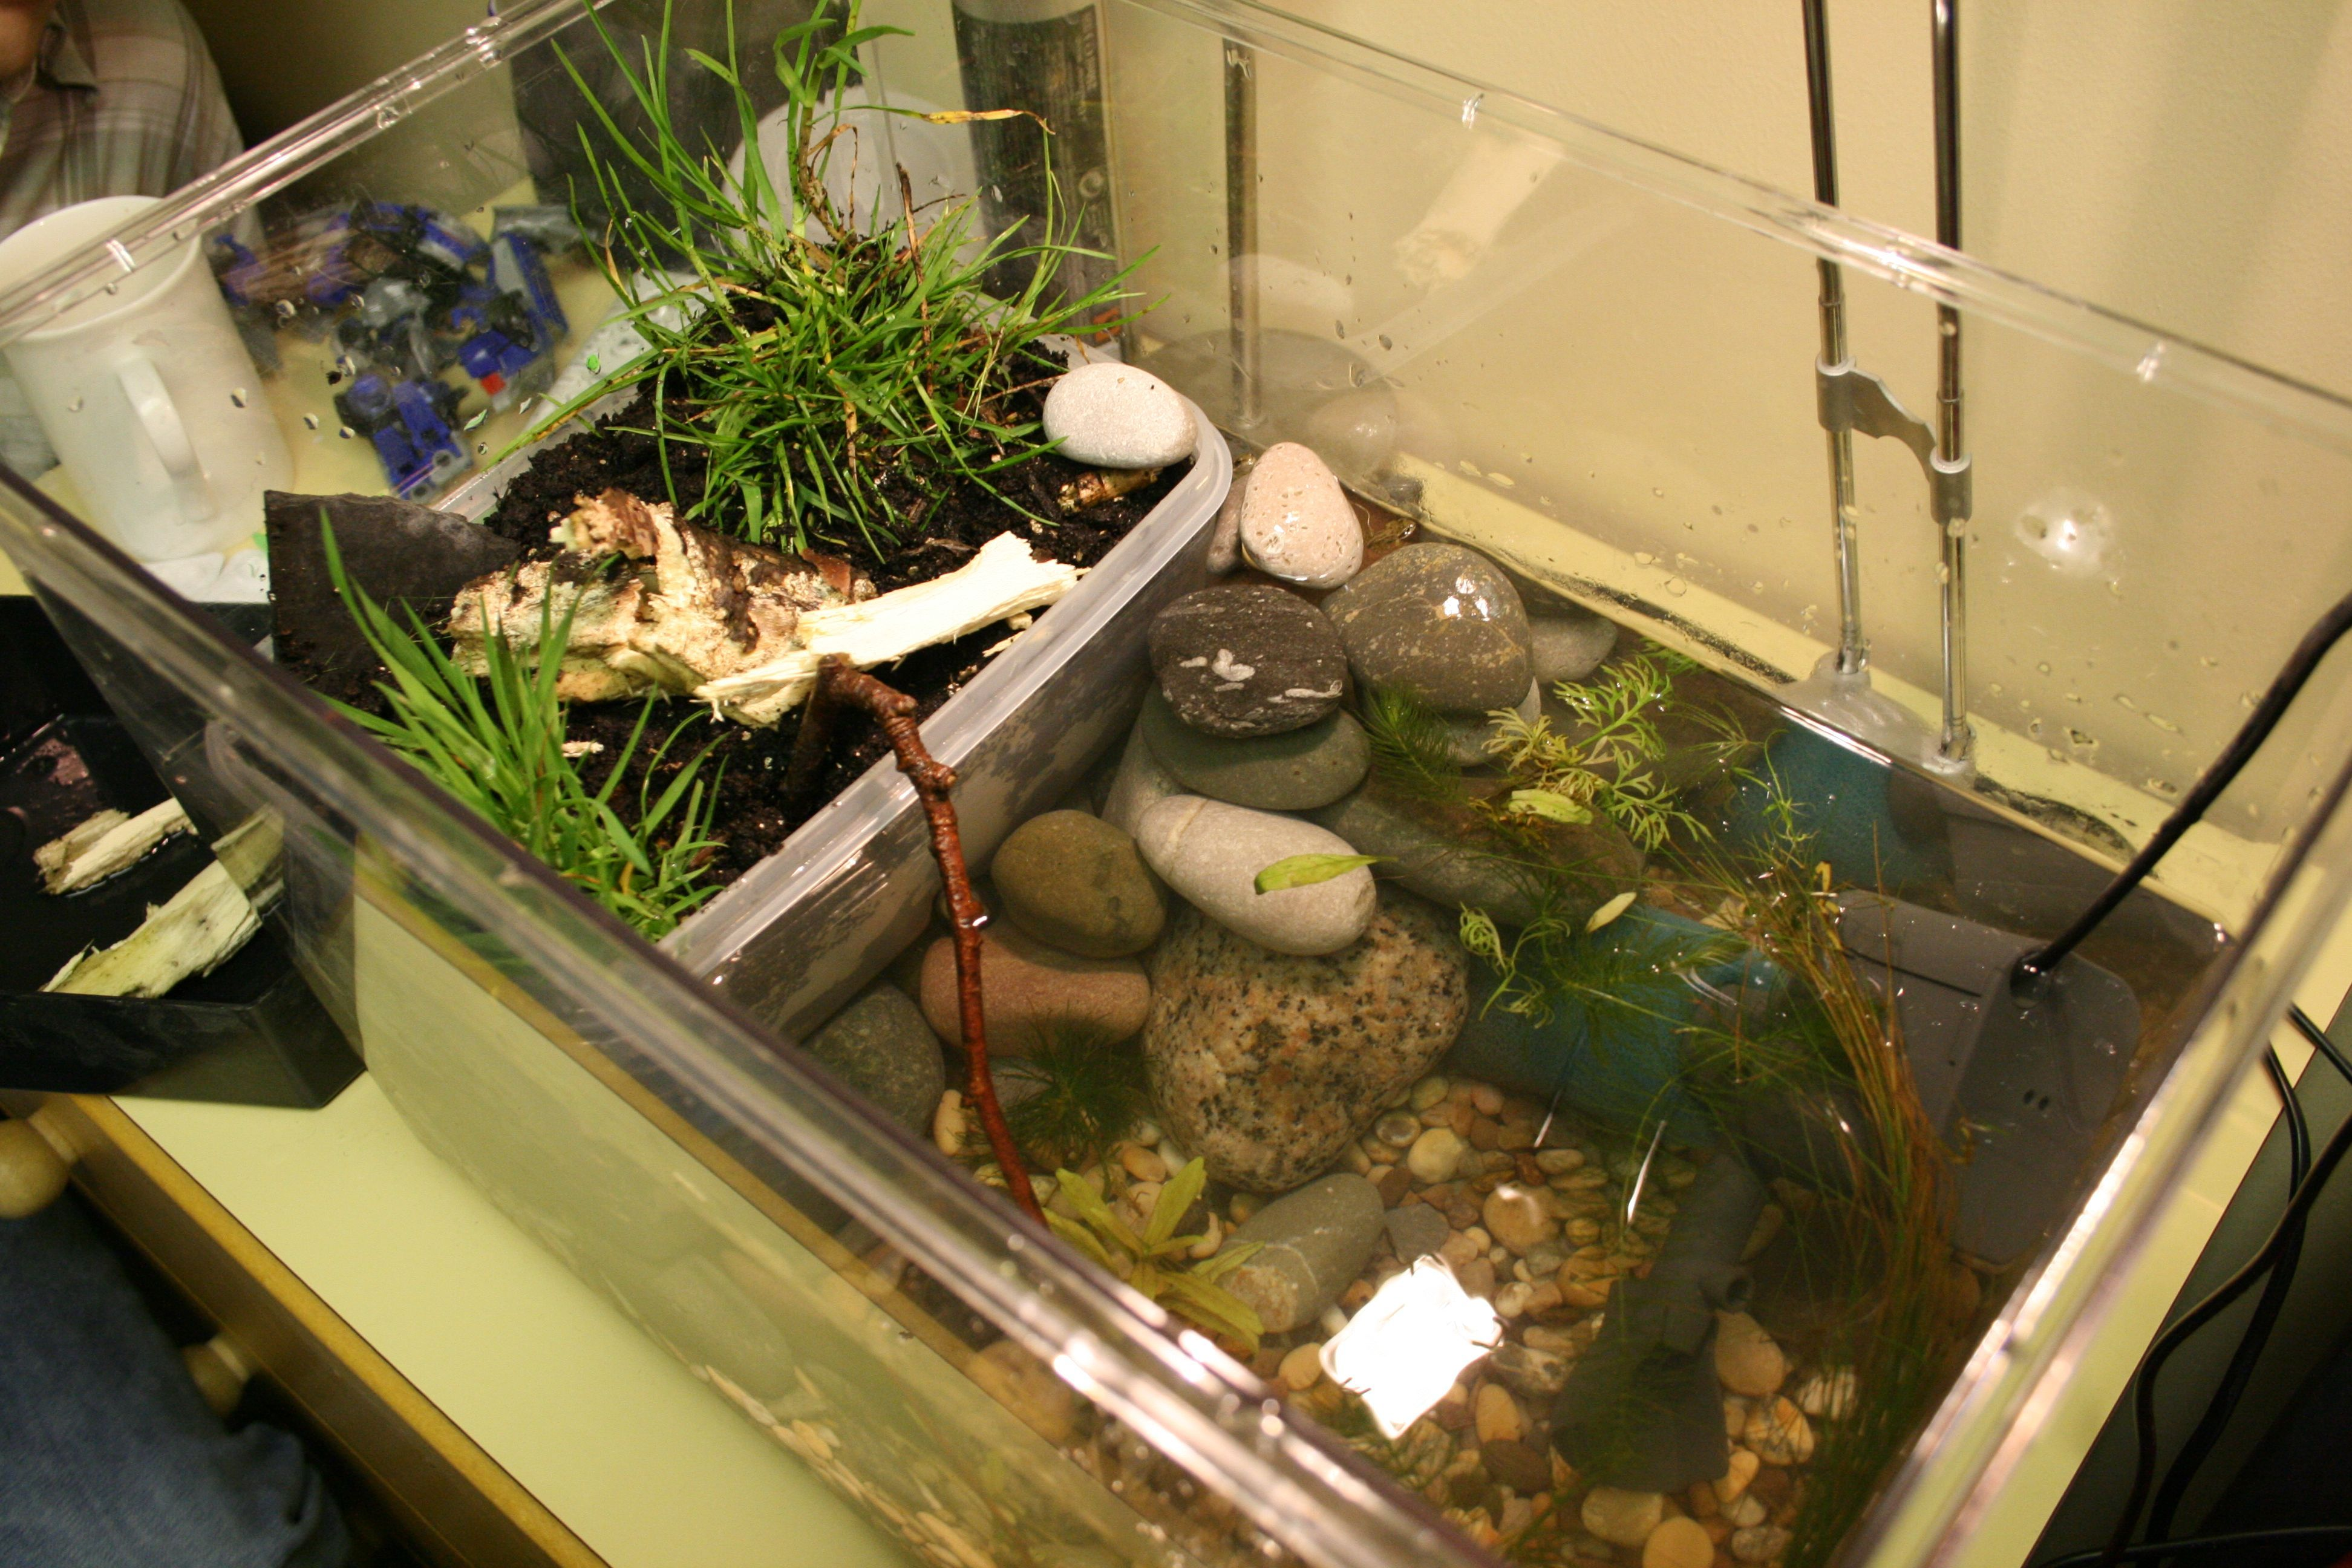 I chose a frog tank so children can watch the different stages and